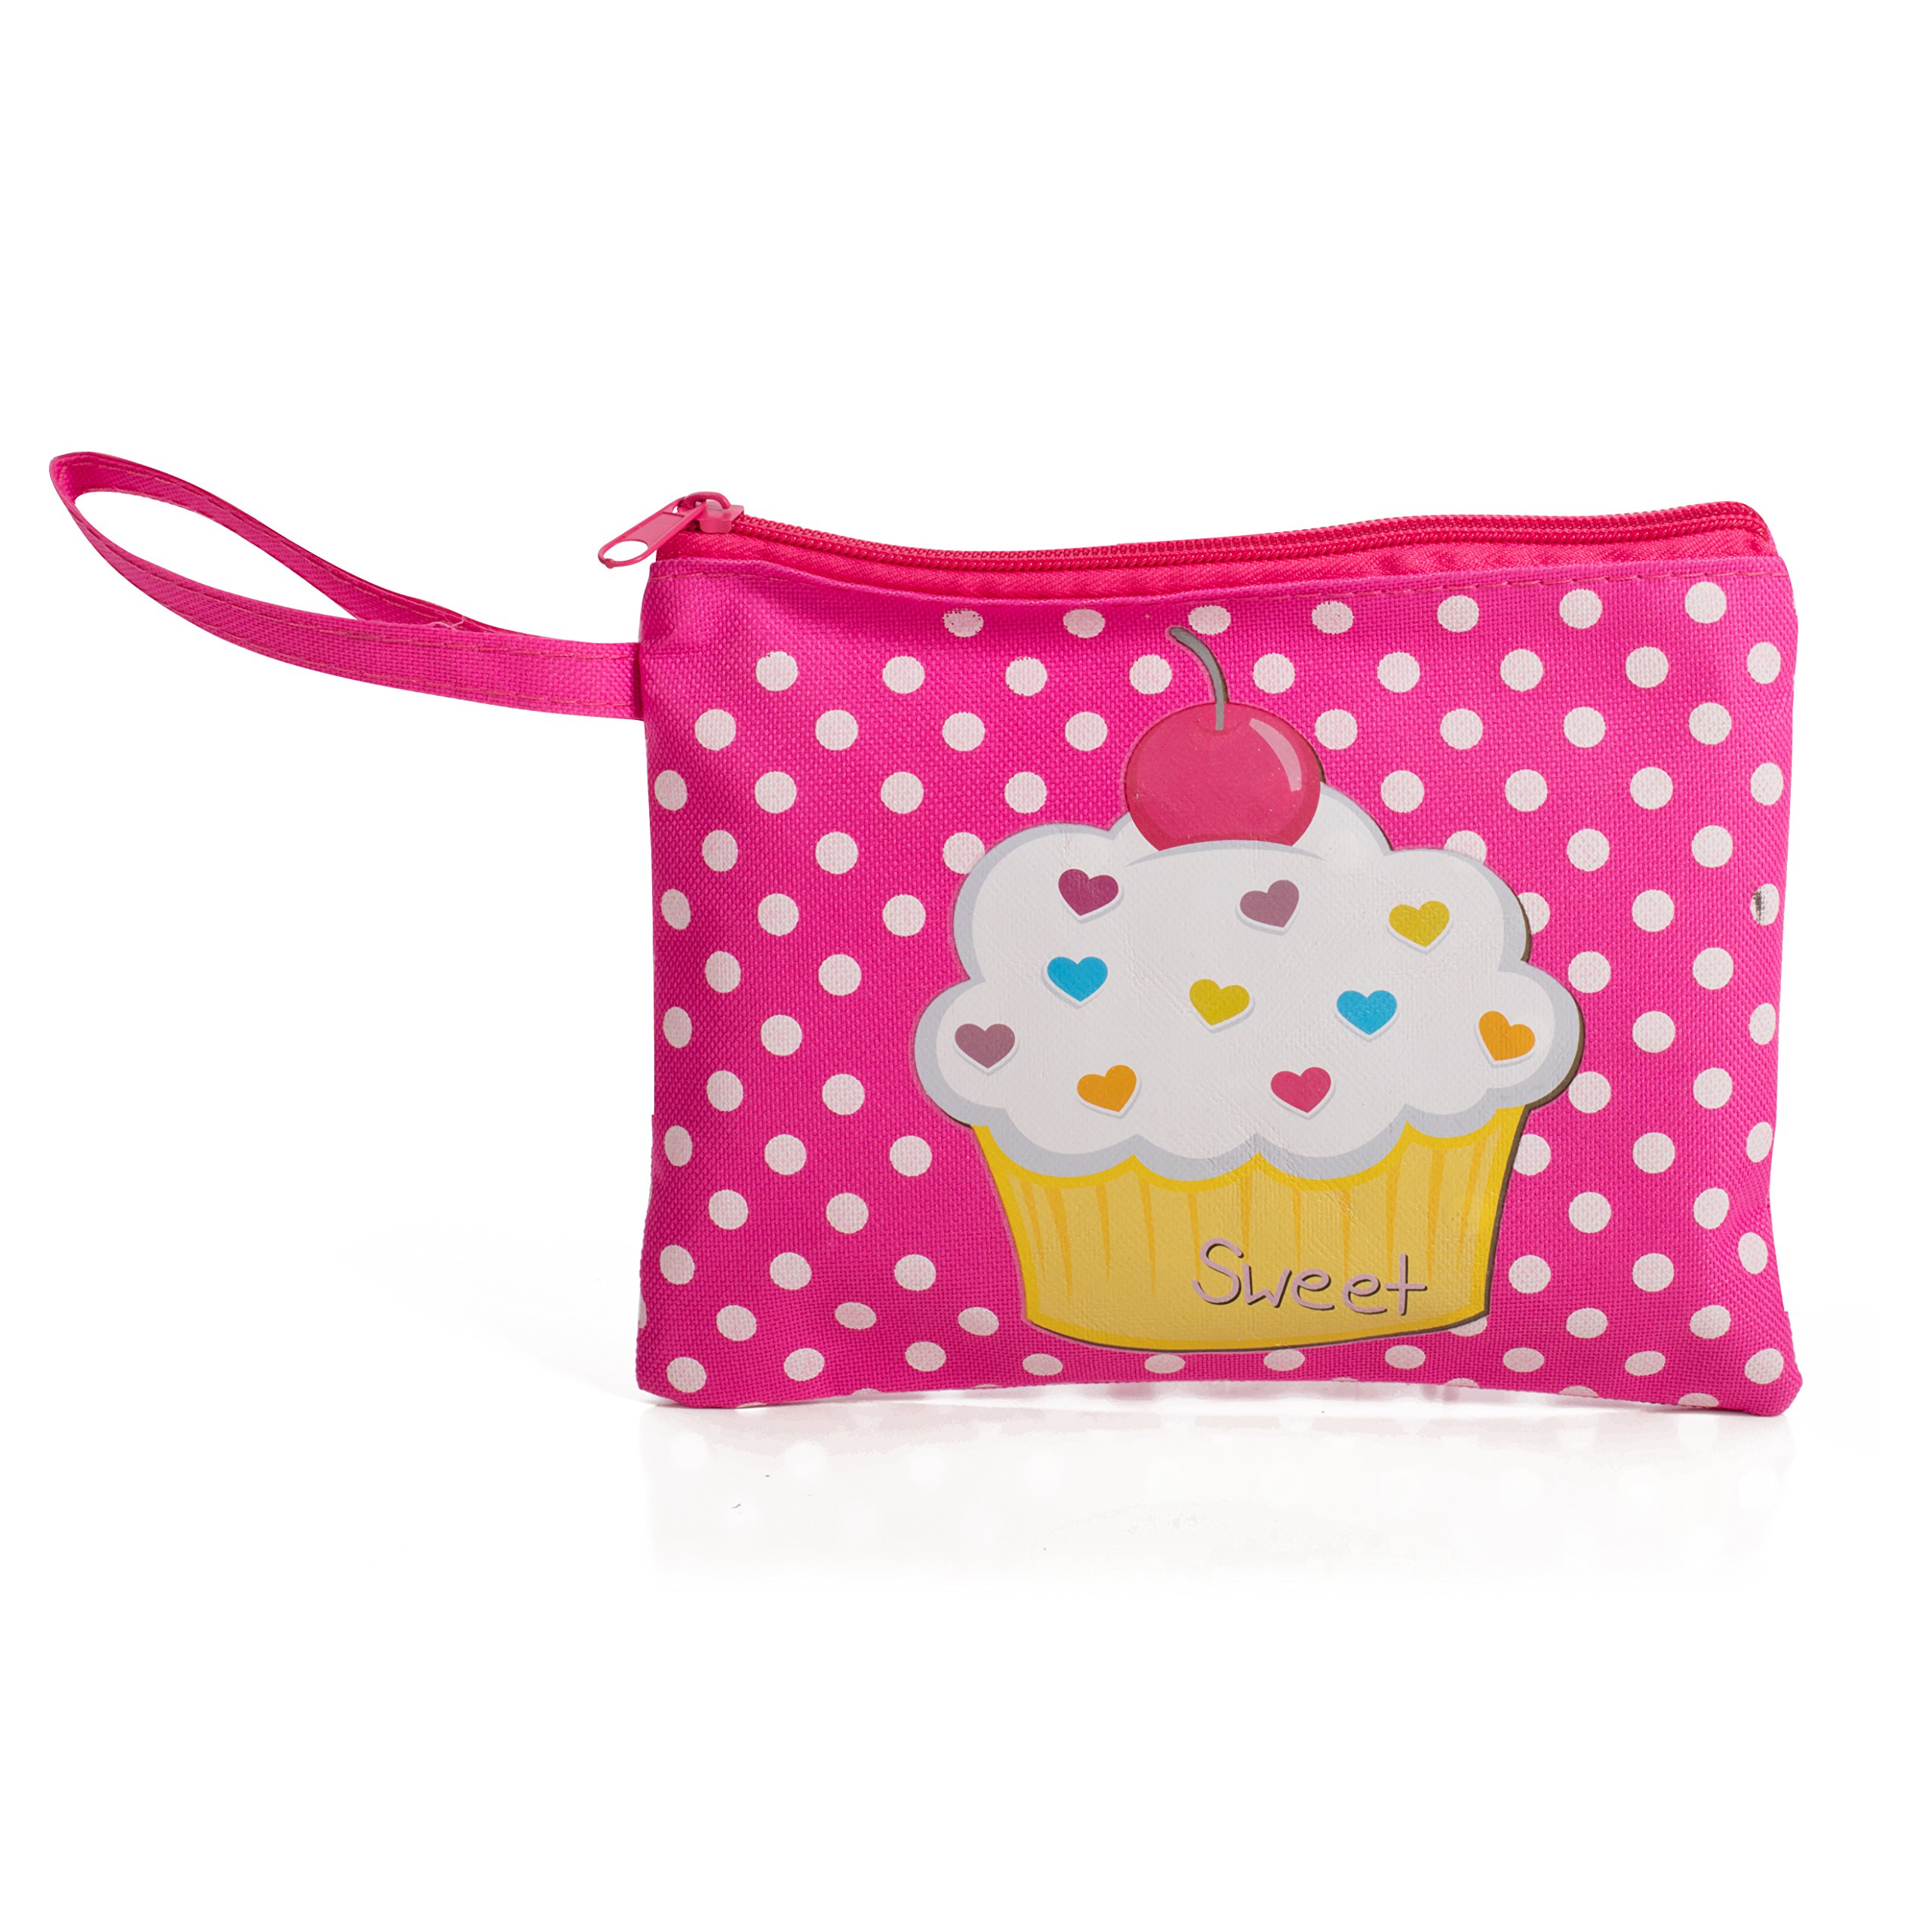 Beverly Hills Kids Pretend Play Makeup Cosmetic Kit With Bright Polka Dotted Cosmetic Bag by Beverly Hills (Image #2)